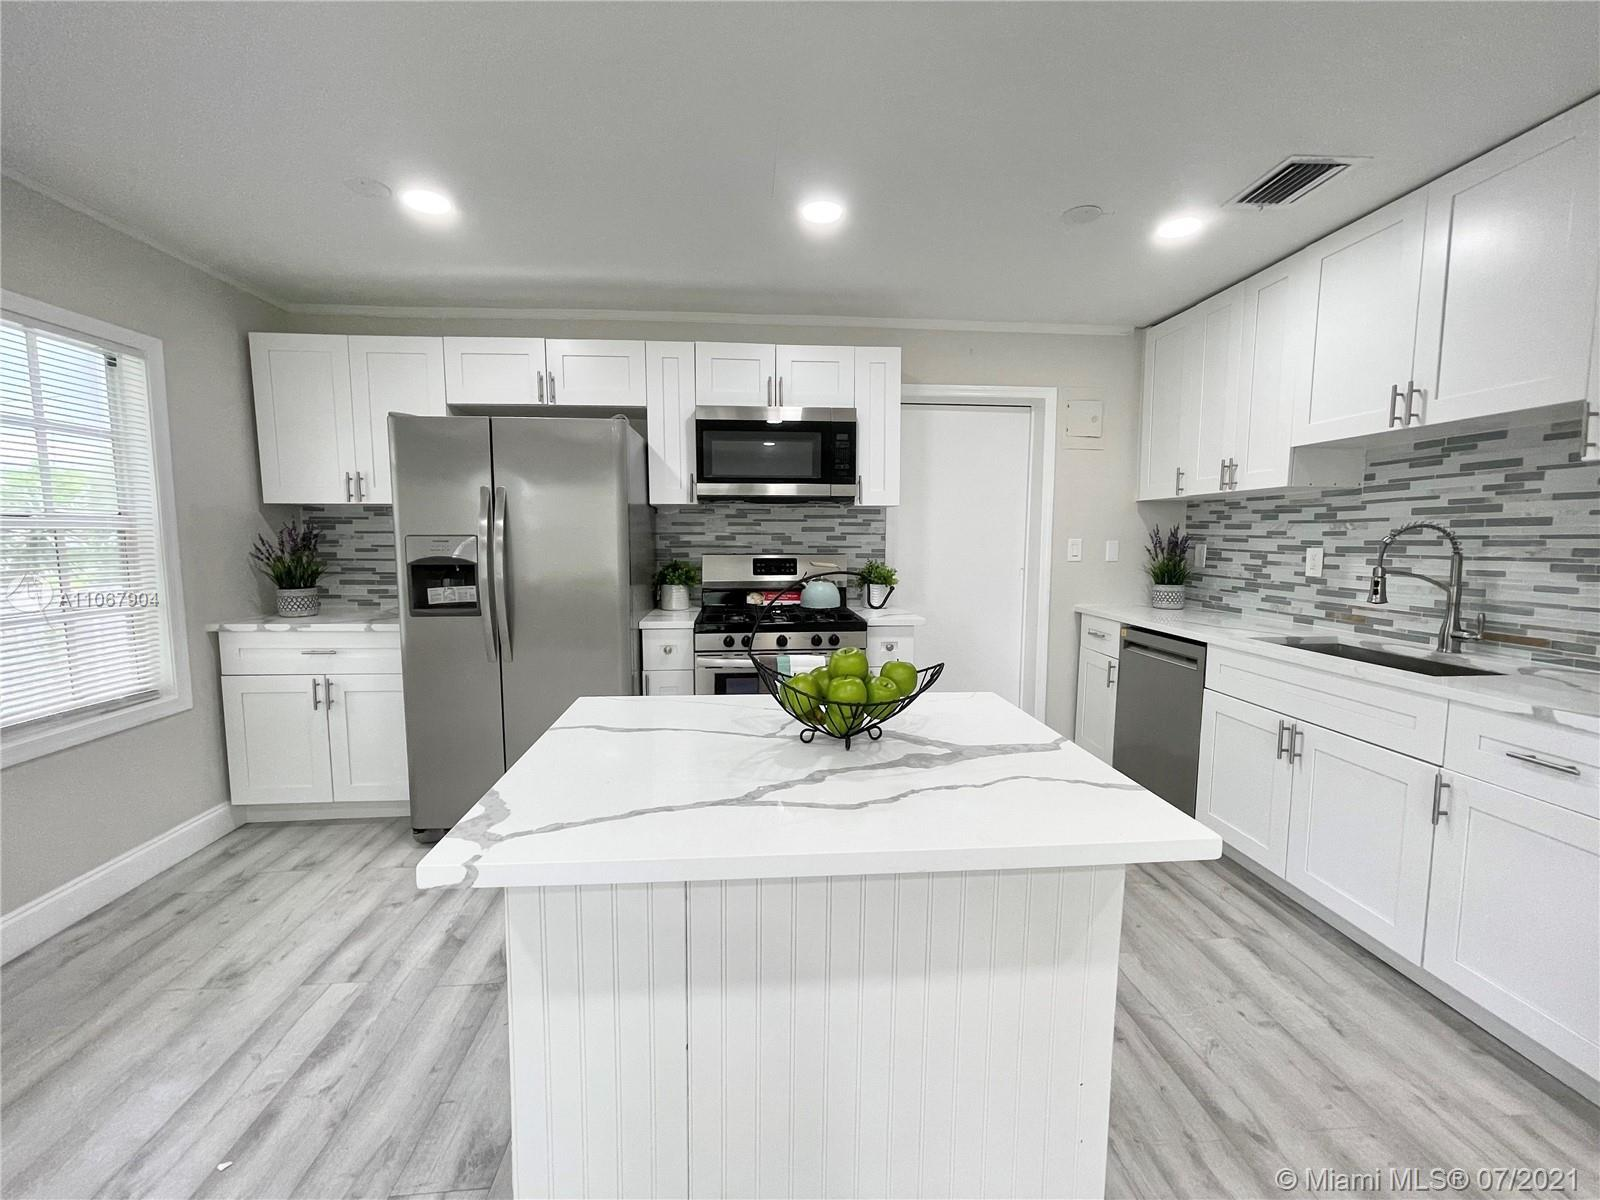 Beautifully remodeled 2 Bedroom/ 2 Bath single family home in Northwood Village. Enjoy easy access t